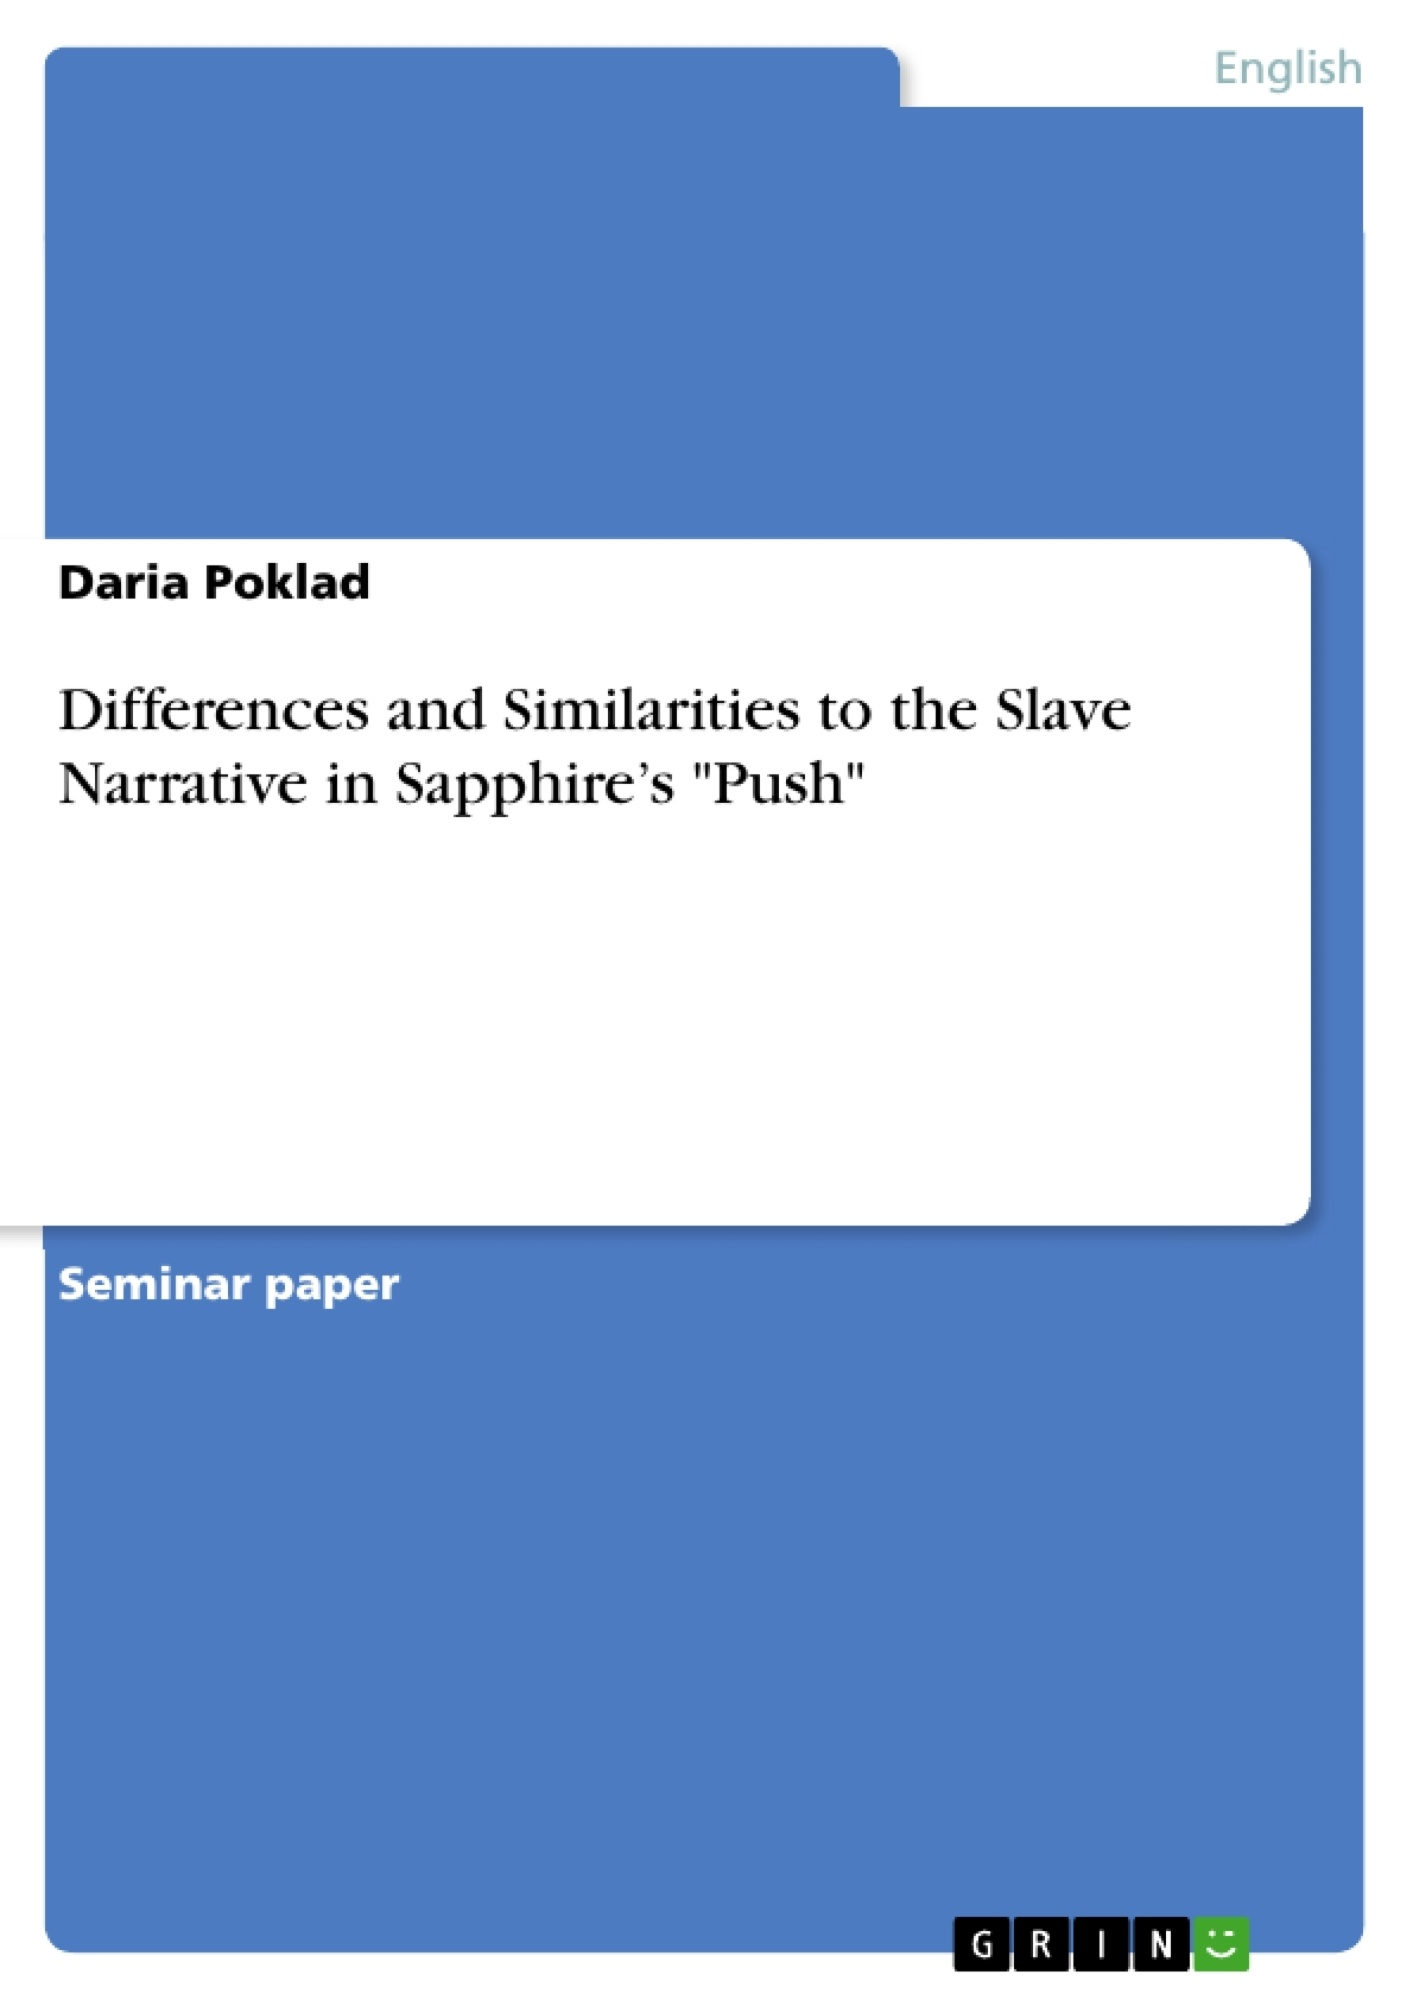 """Title: Differences and Similarities to the Slave Narrative in Sapphire's """"Push"""""""